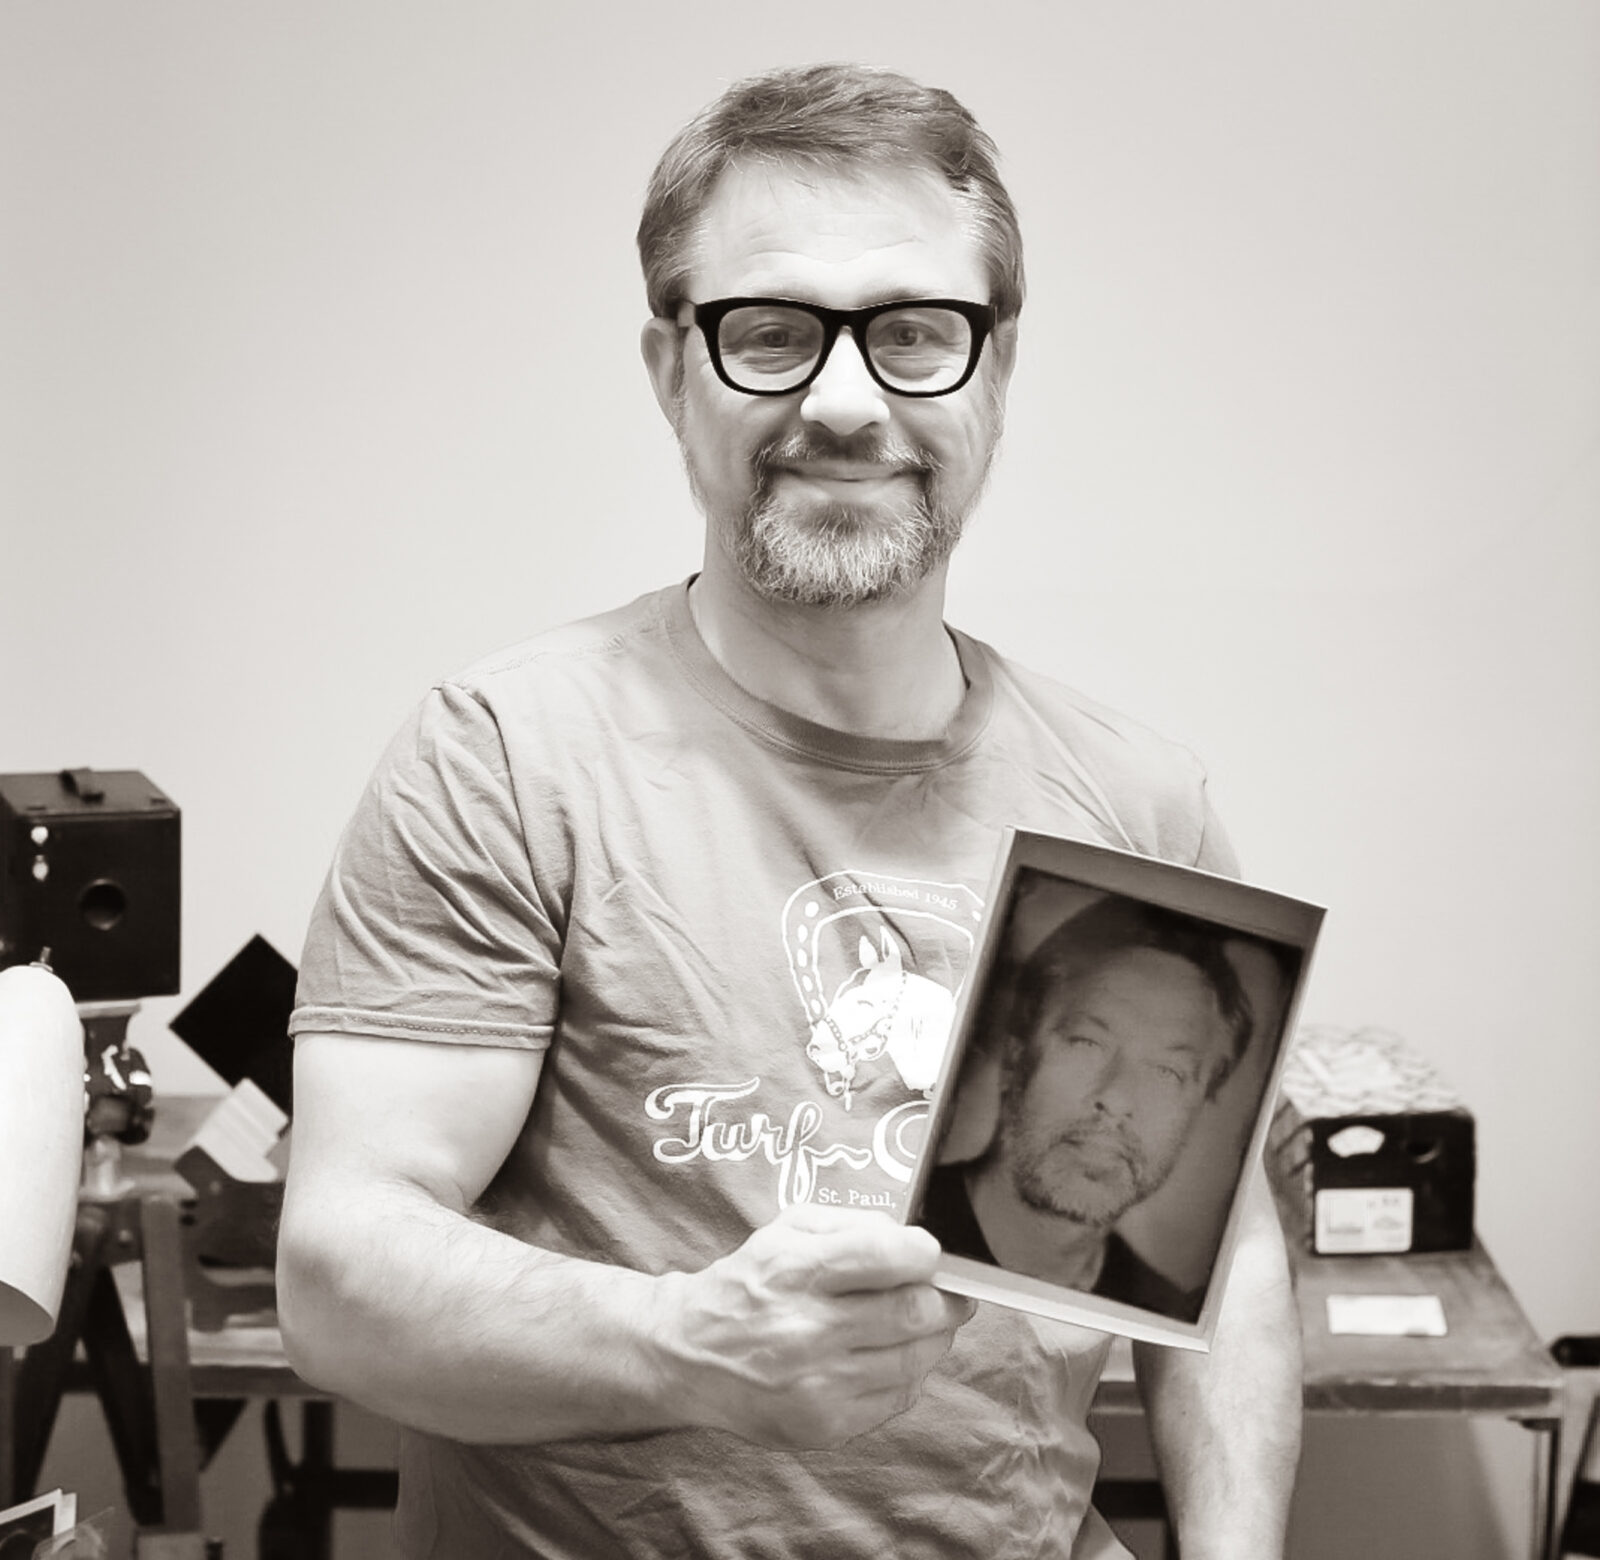 Man looking in the camera holding a tintype photograph of himself